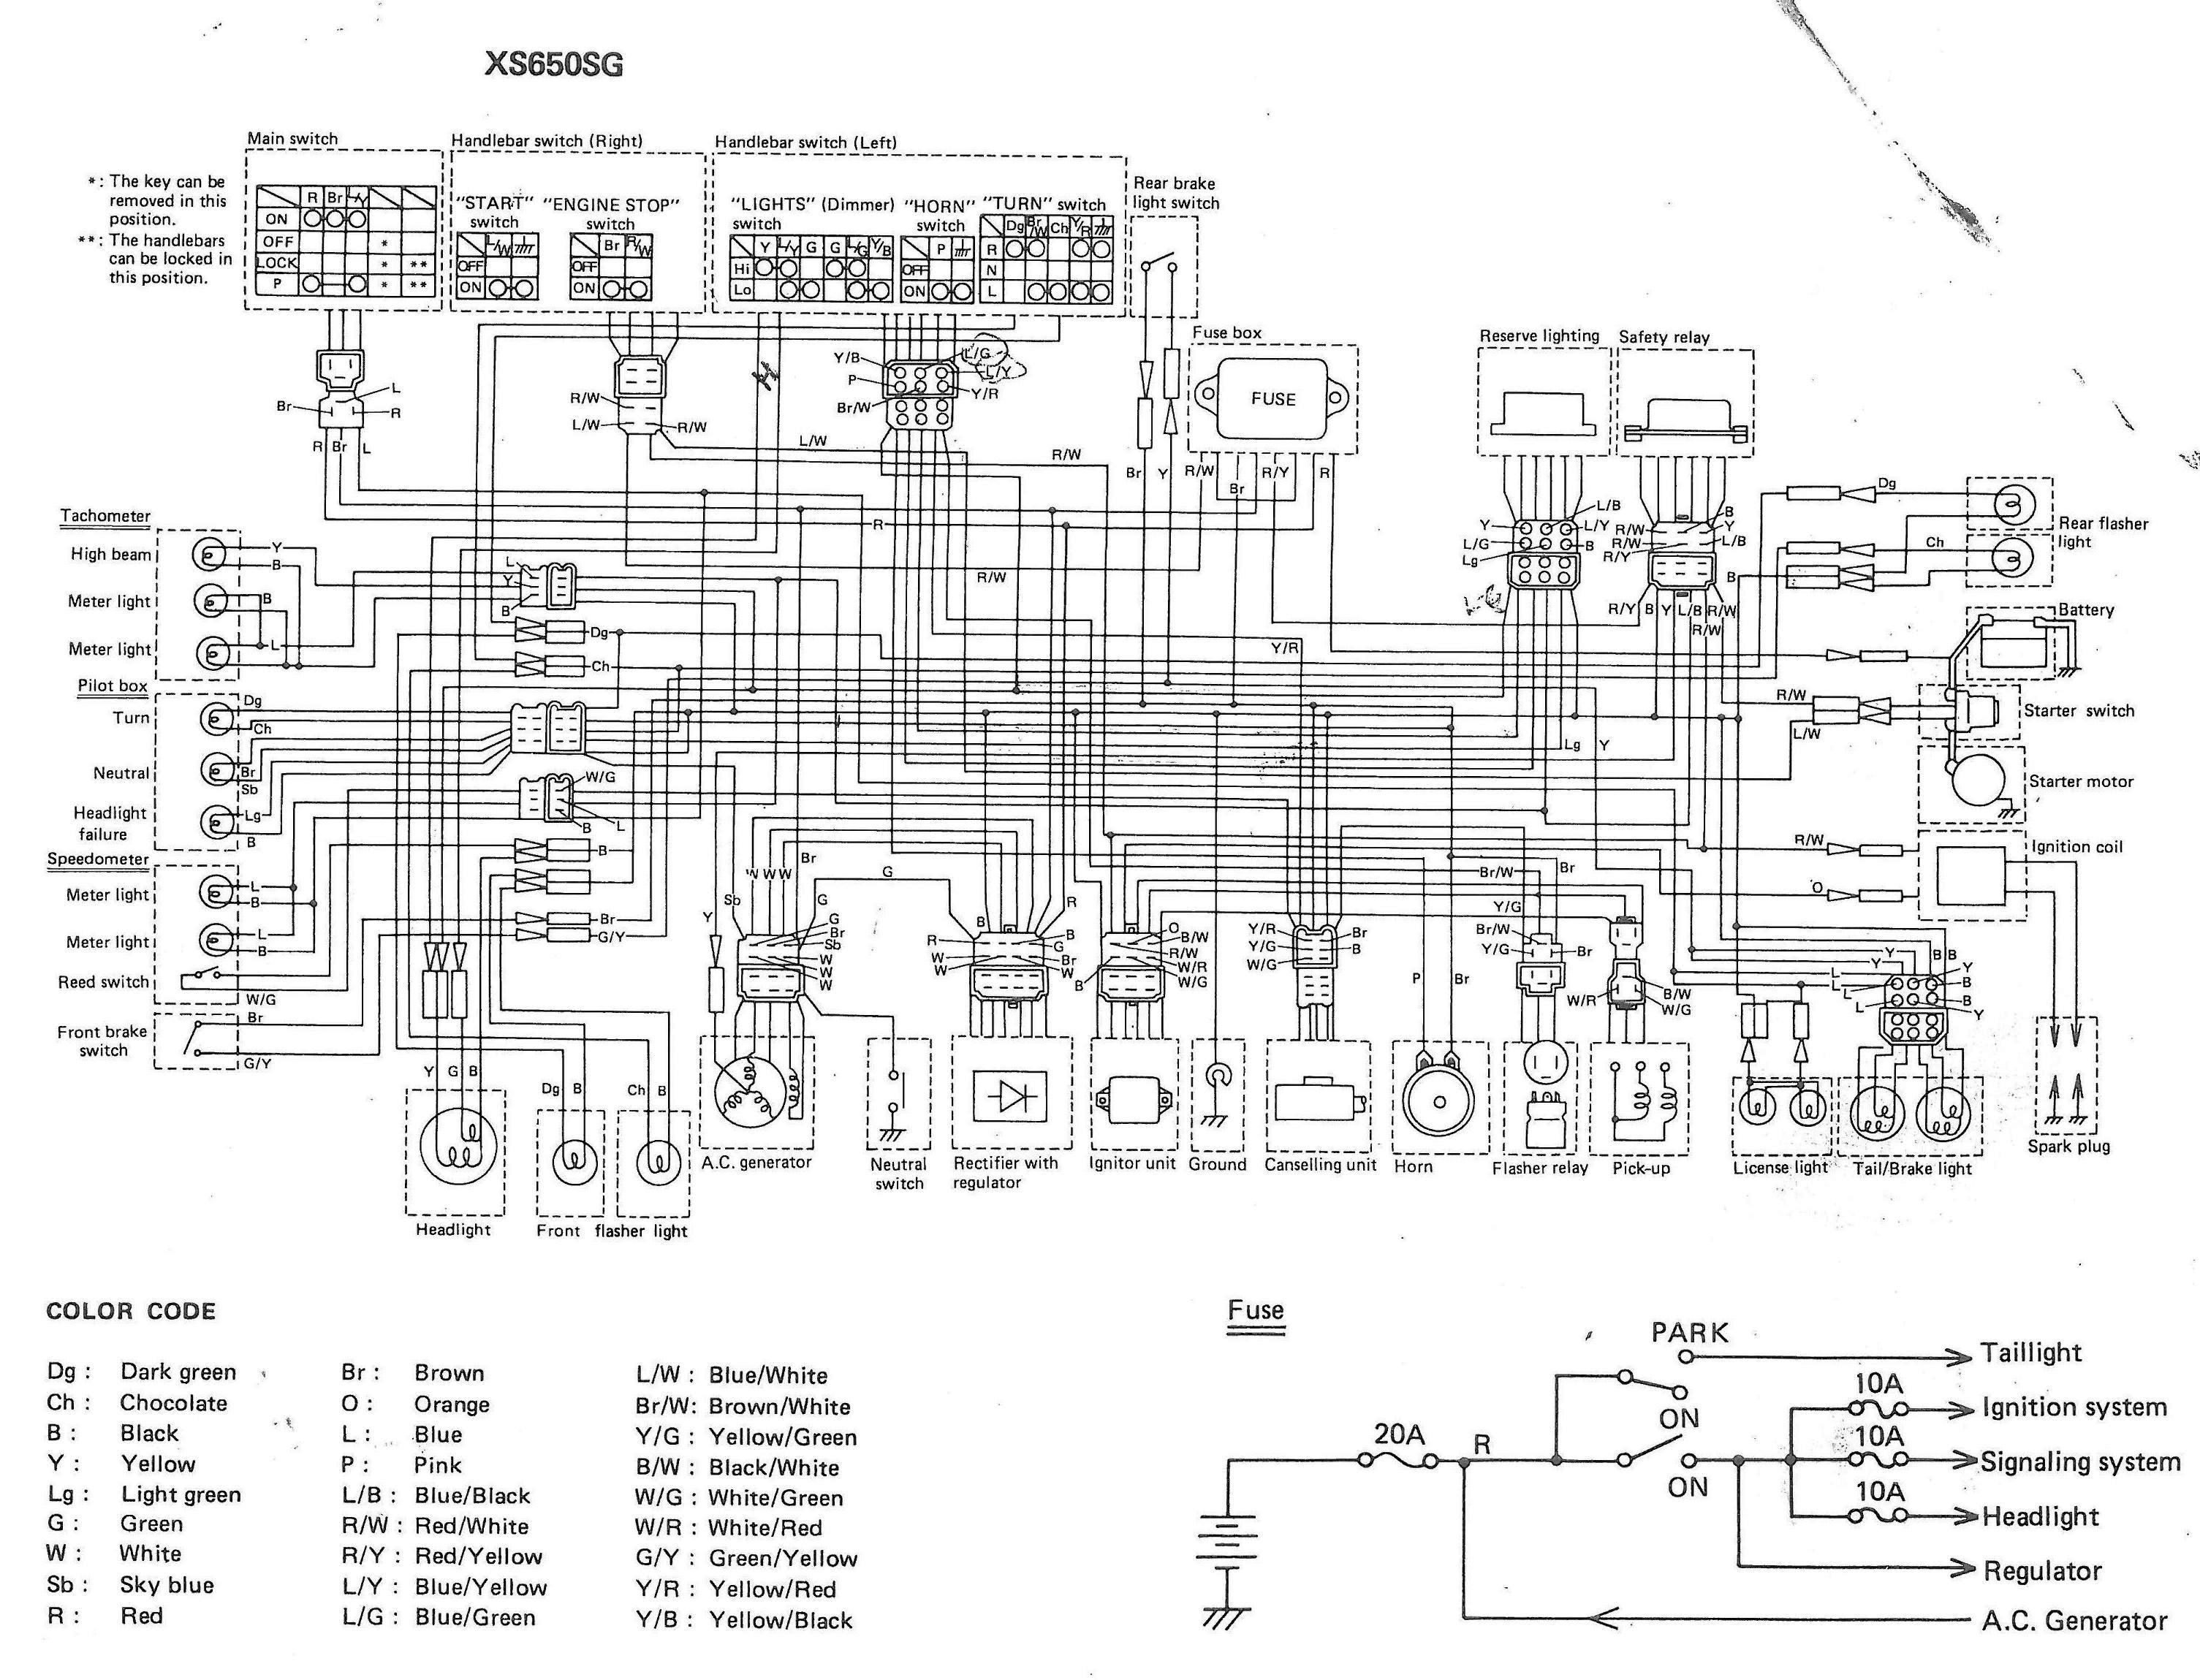 xs650 wiring diagram the wiring diagram 1980 xs650 wiring diagram 1980 wiring diagrams for car or truck wiring